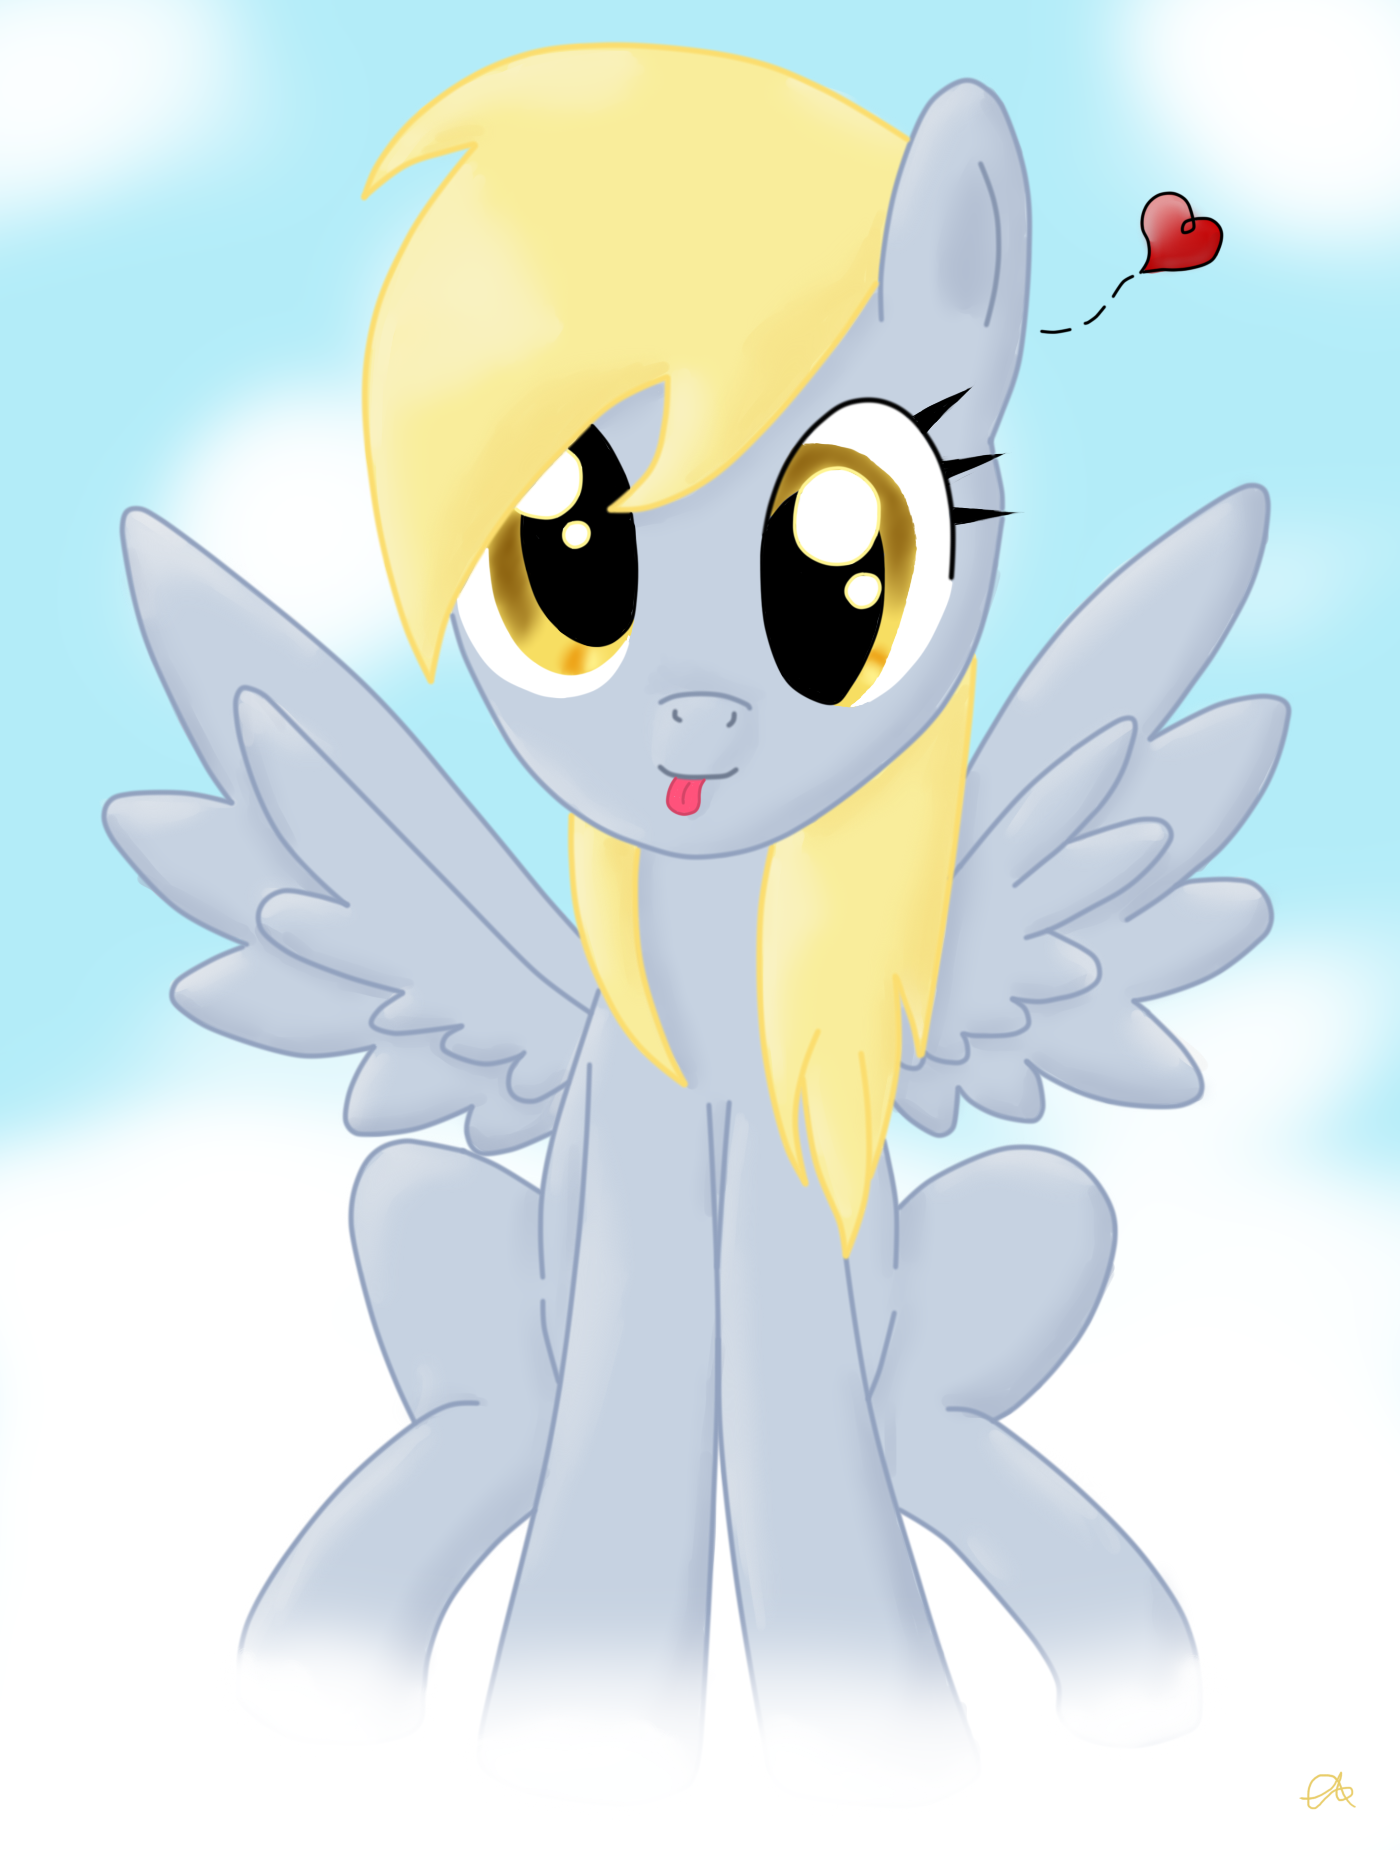 Derpy Hooves (Earth-4500)